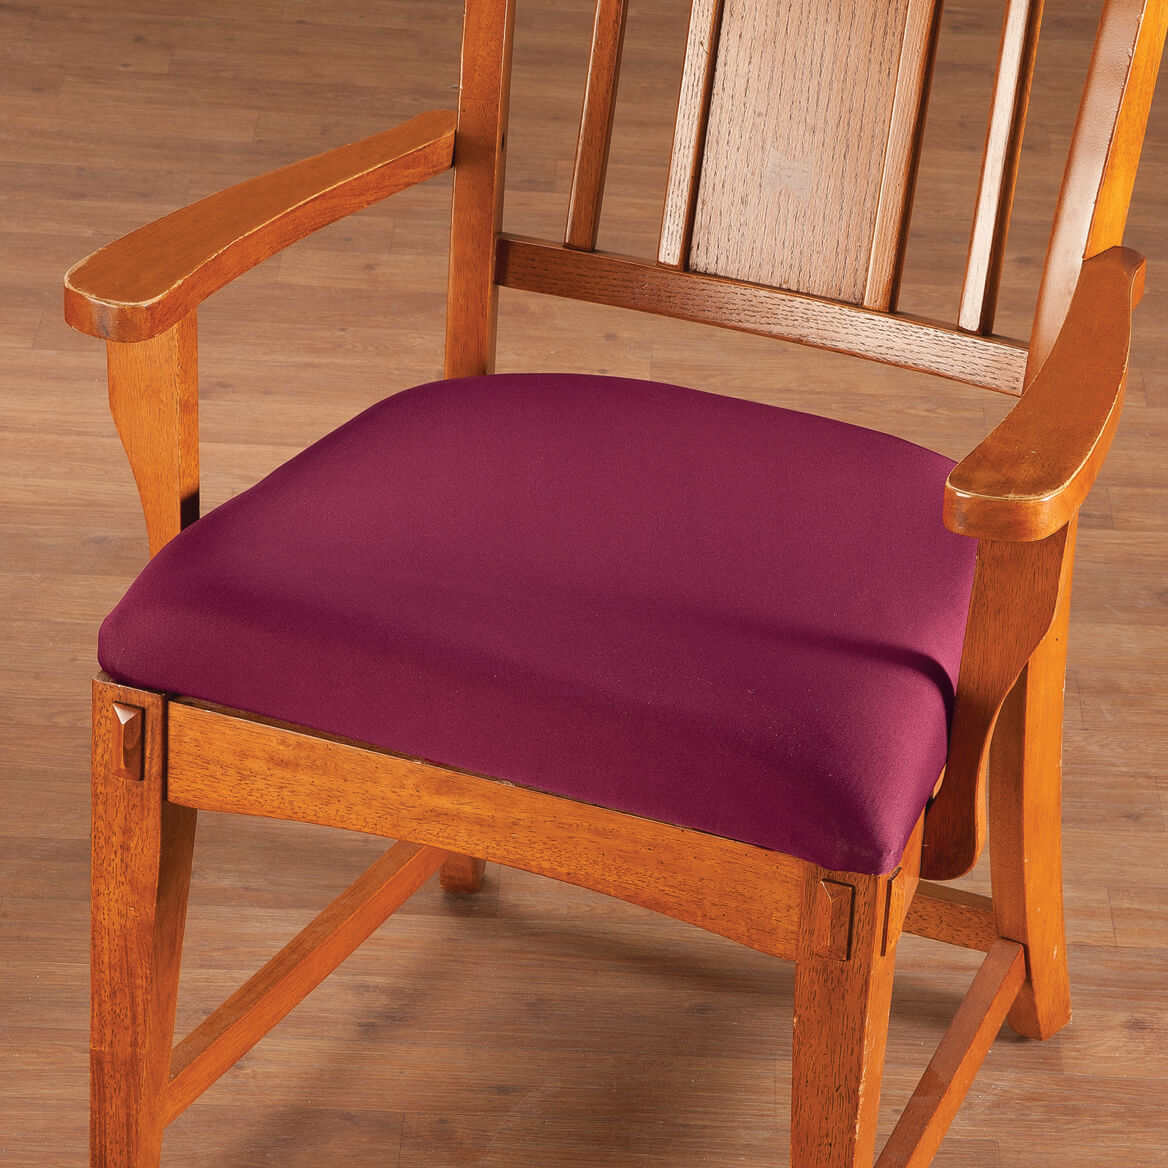 Set of 2 Deluxe Reversible Seat Covers Protector Stretch to fit Elastic Edge NEW